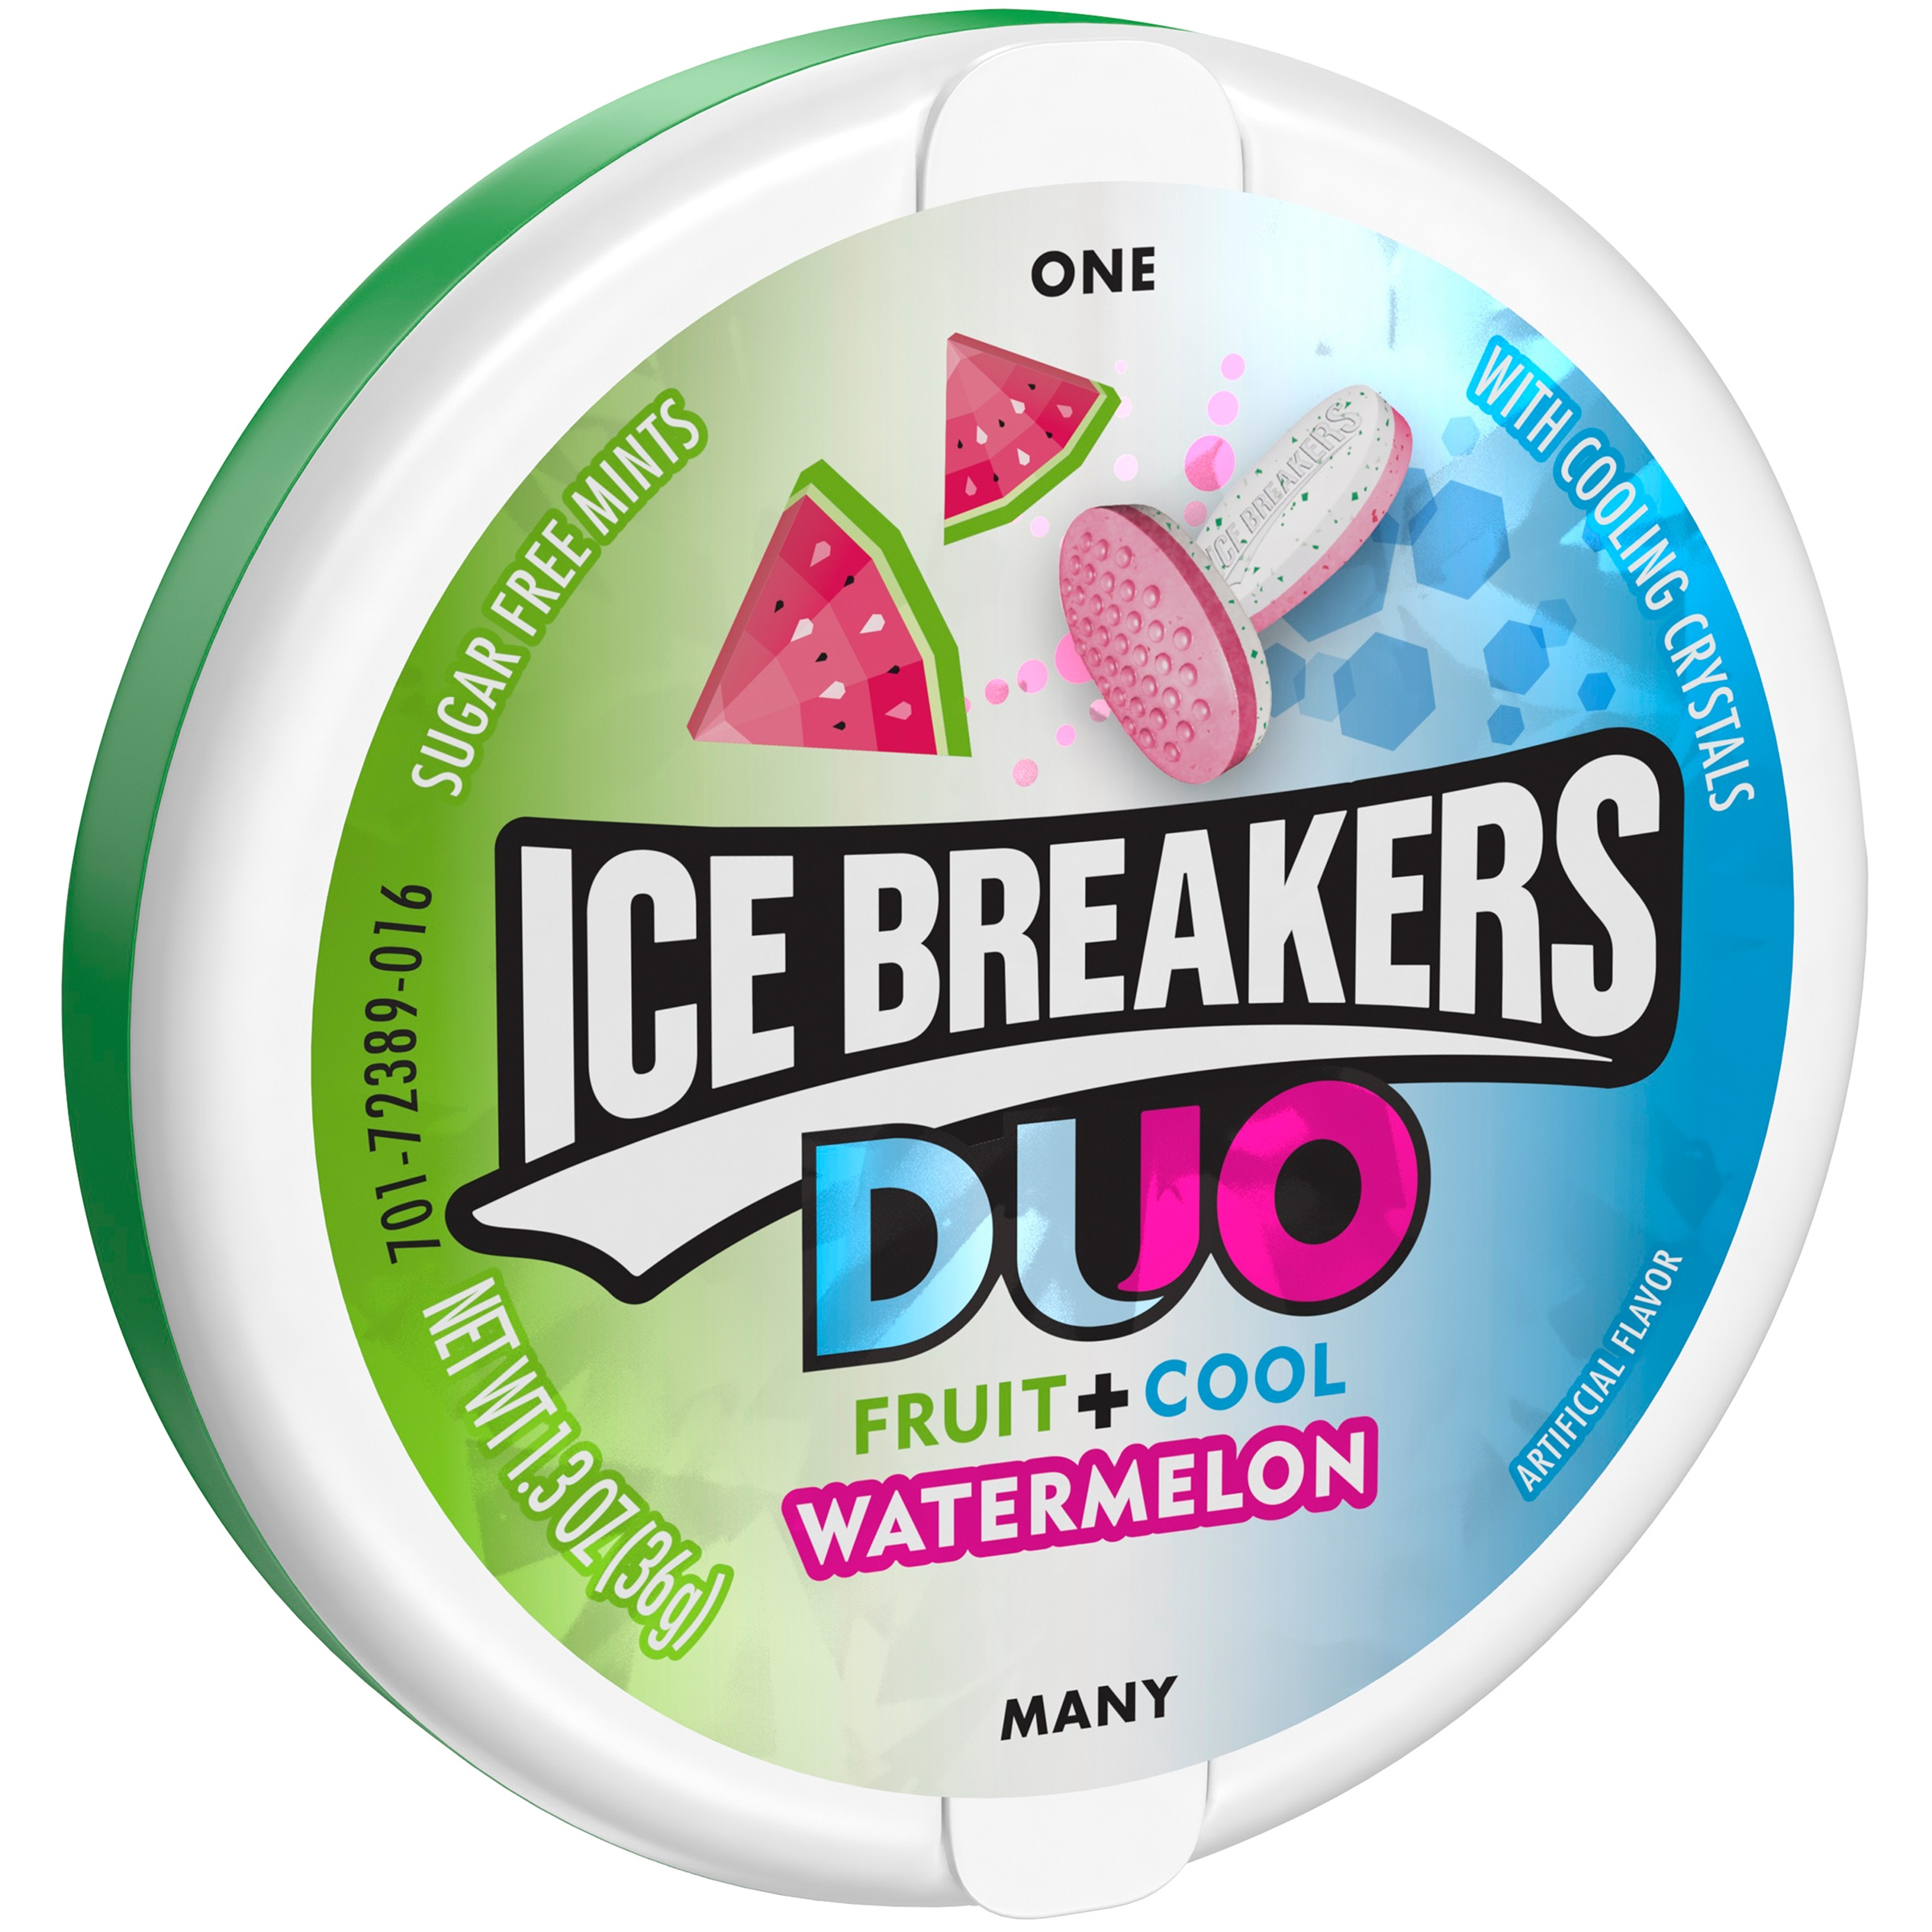 ICE BREAKERS DUO Watermelon Flavored Mints, 1.3 oz by The Hershey Company